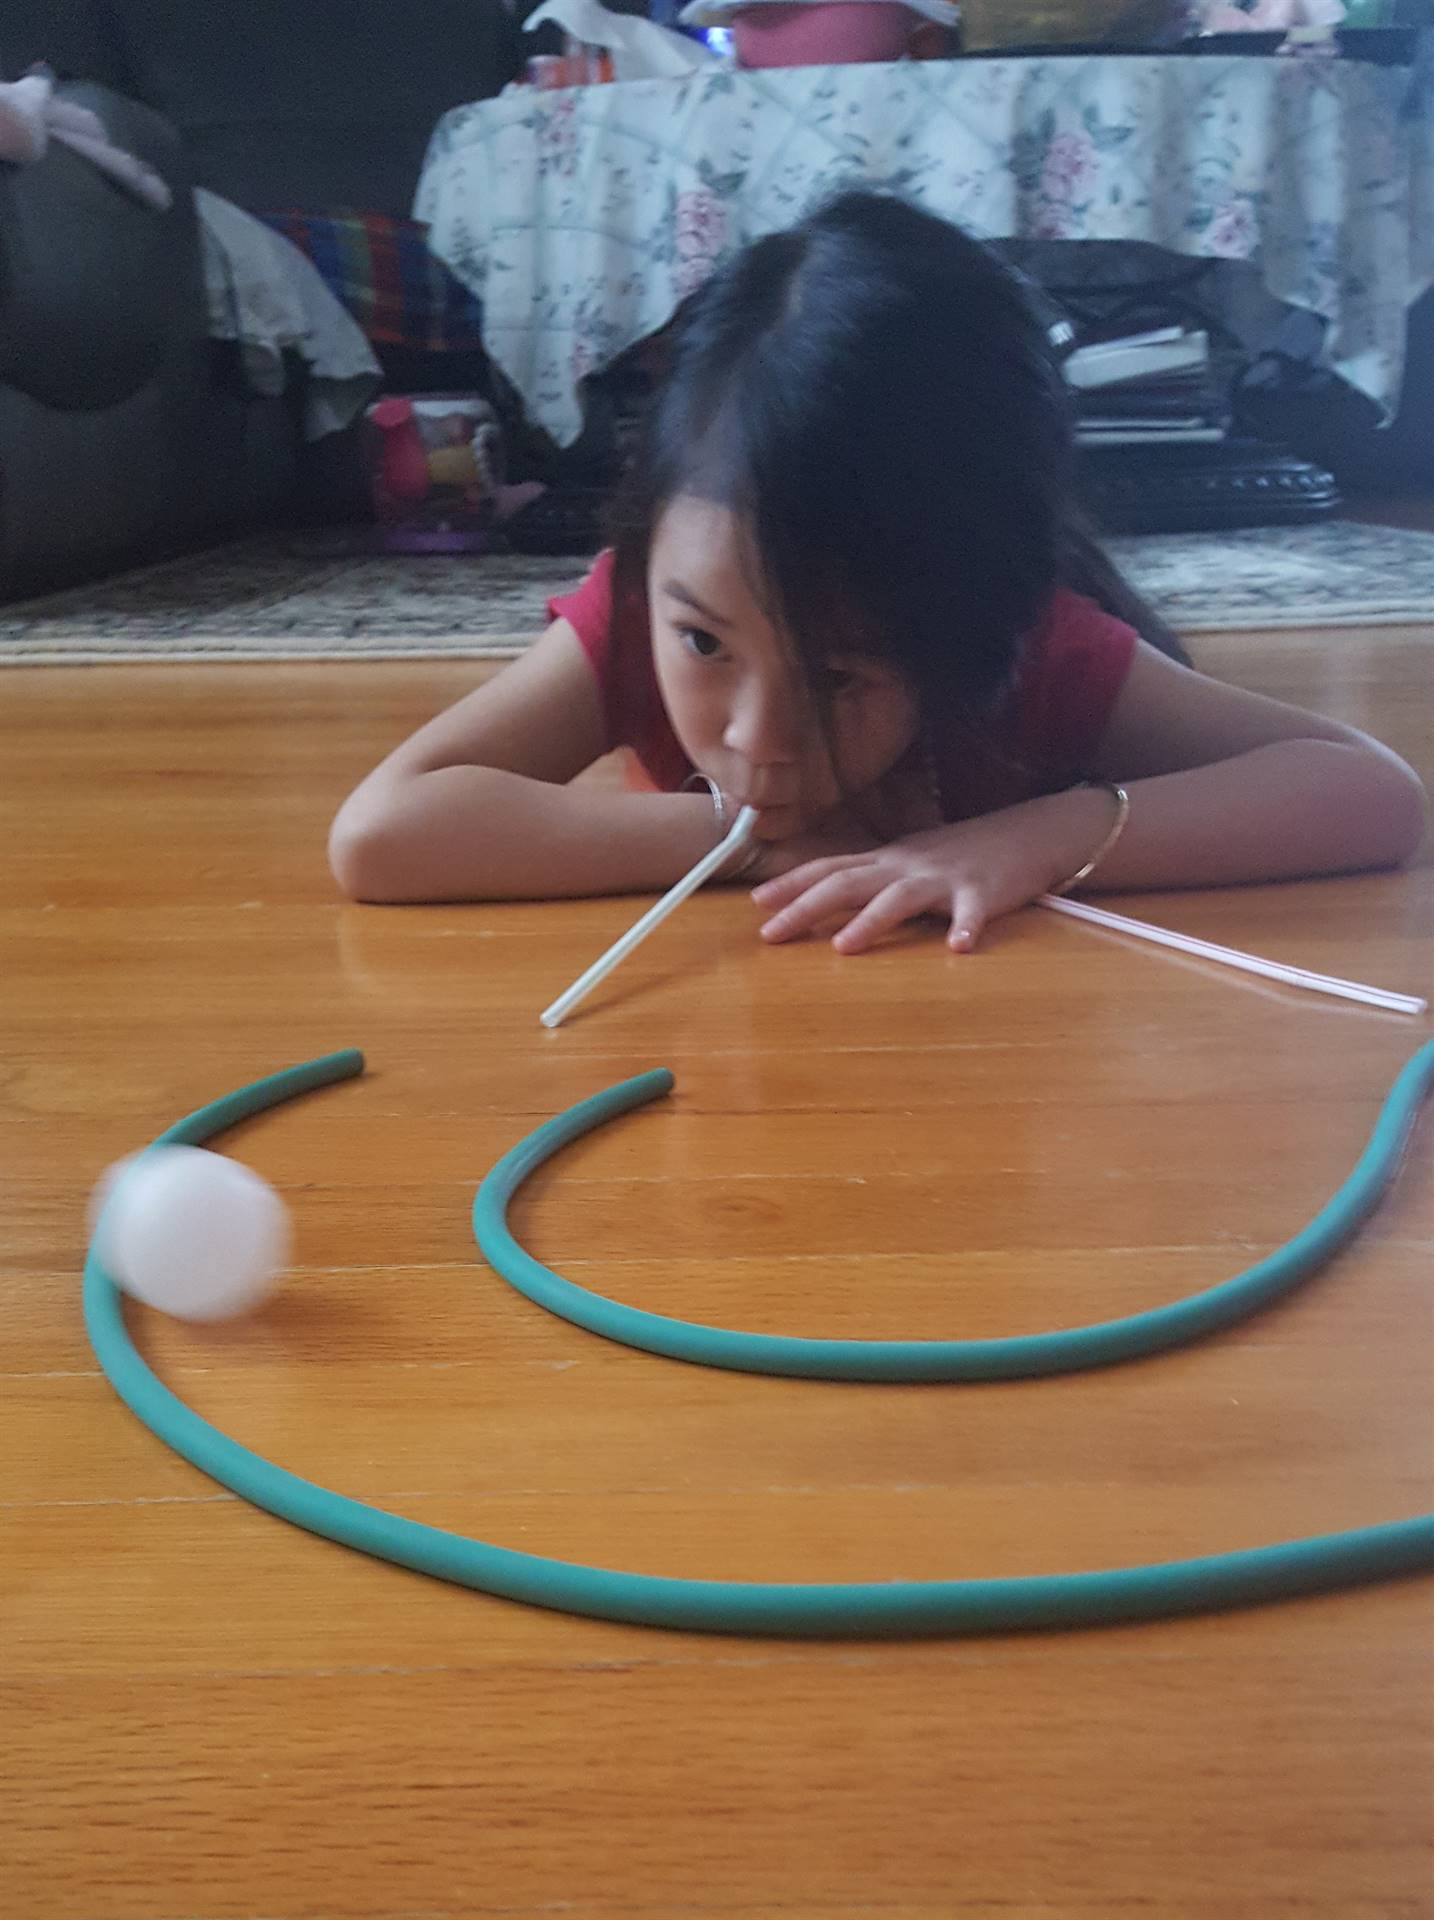 A little girl continues to blow through a straw to move a ping pong ball.